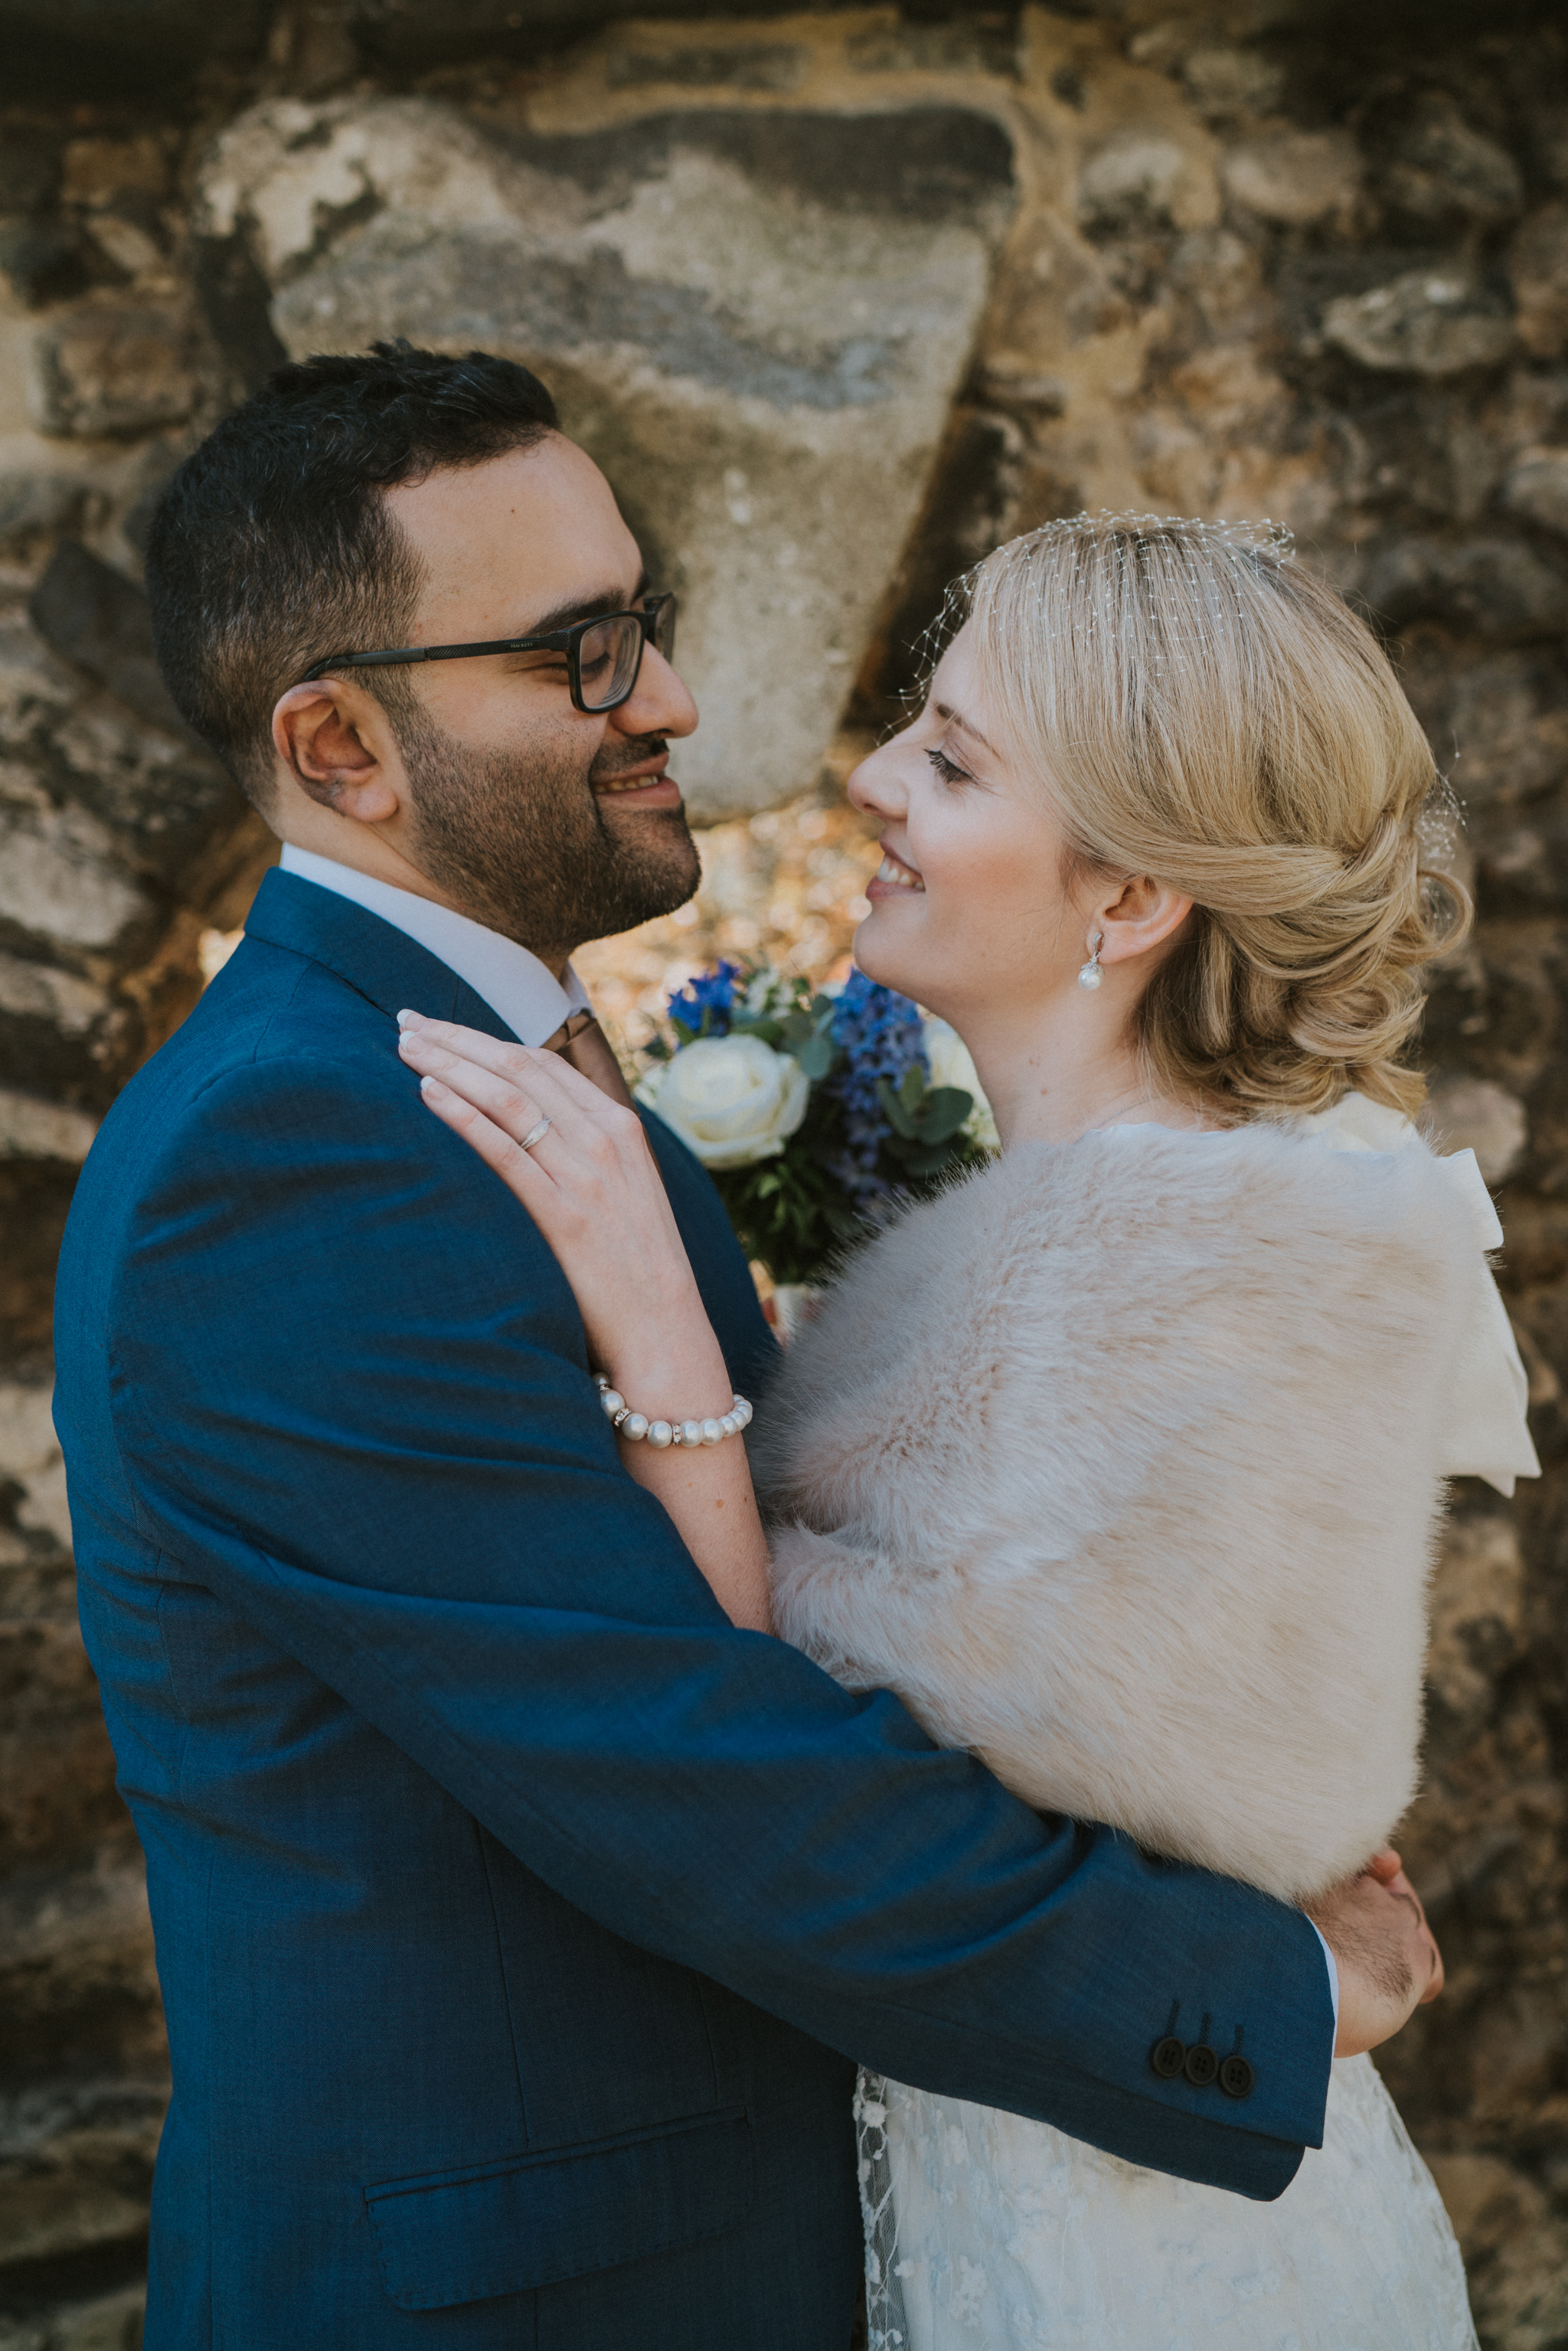 rhian-ali-colchester-essex-town-elopement-alternative-wedding-photographer-grace-elizabeth-essex-suffolk-norfolk-devon (62 of 81).jpg